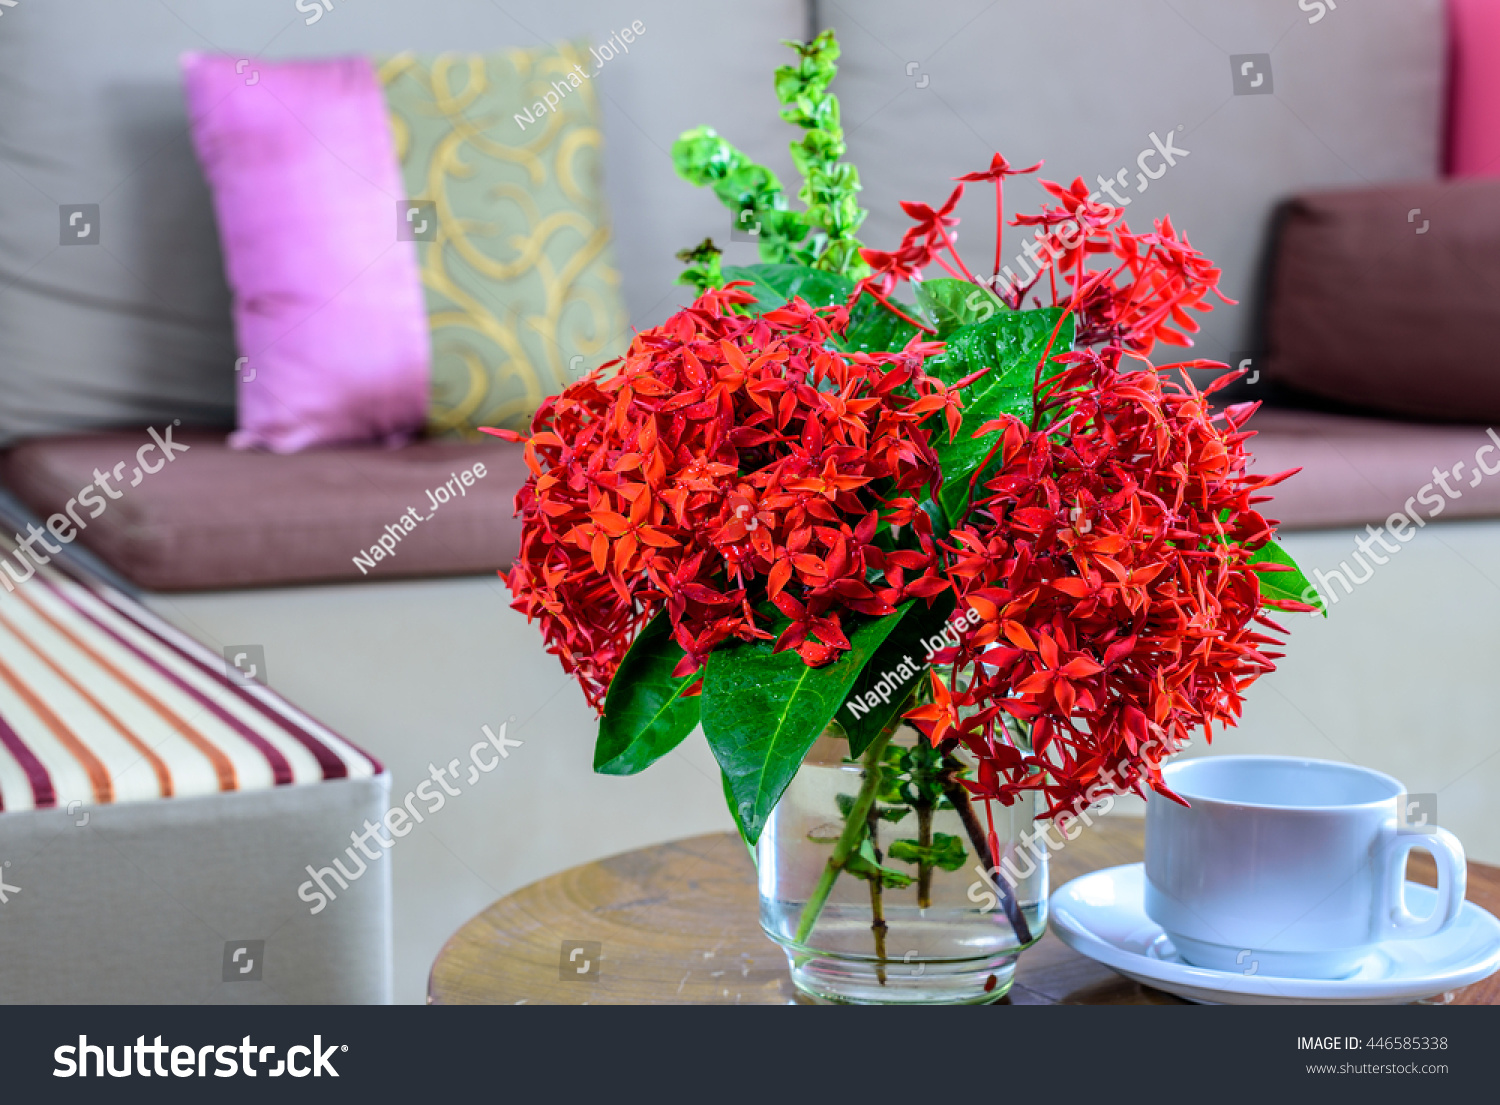 Colorful Flower Vase Coffee Cup On Stock Photo (Royalty Free ...